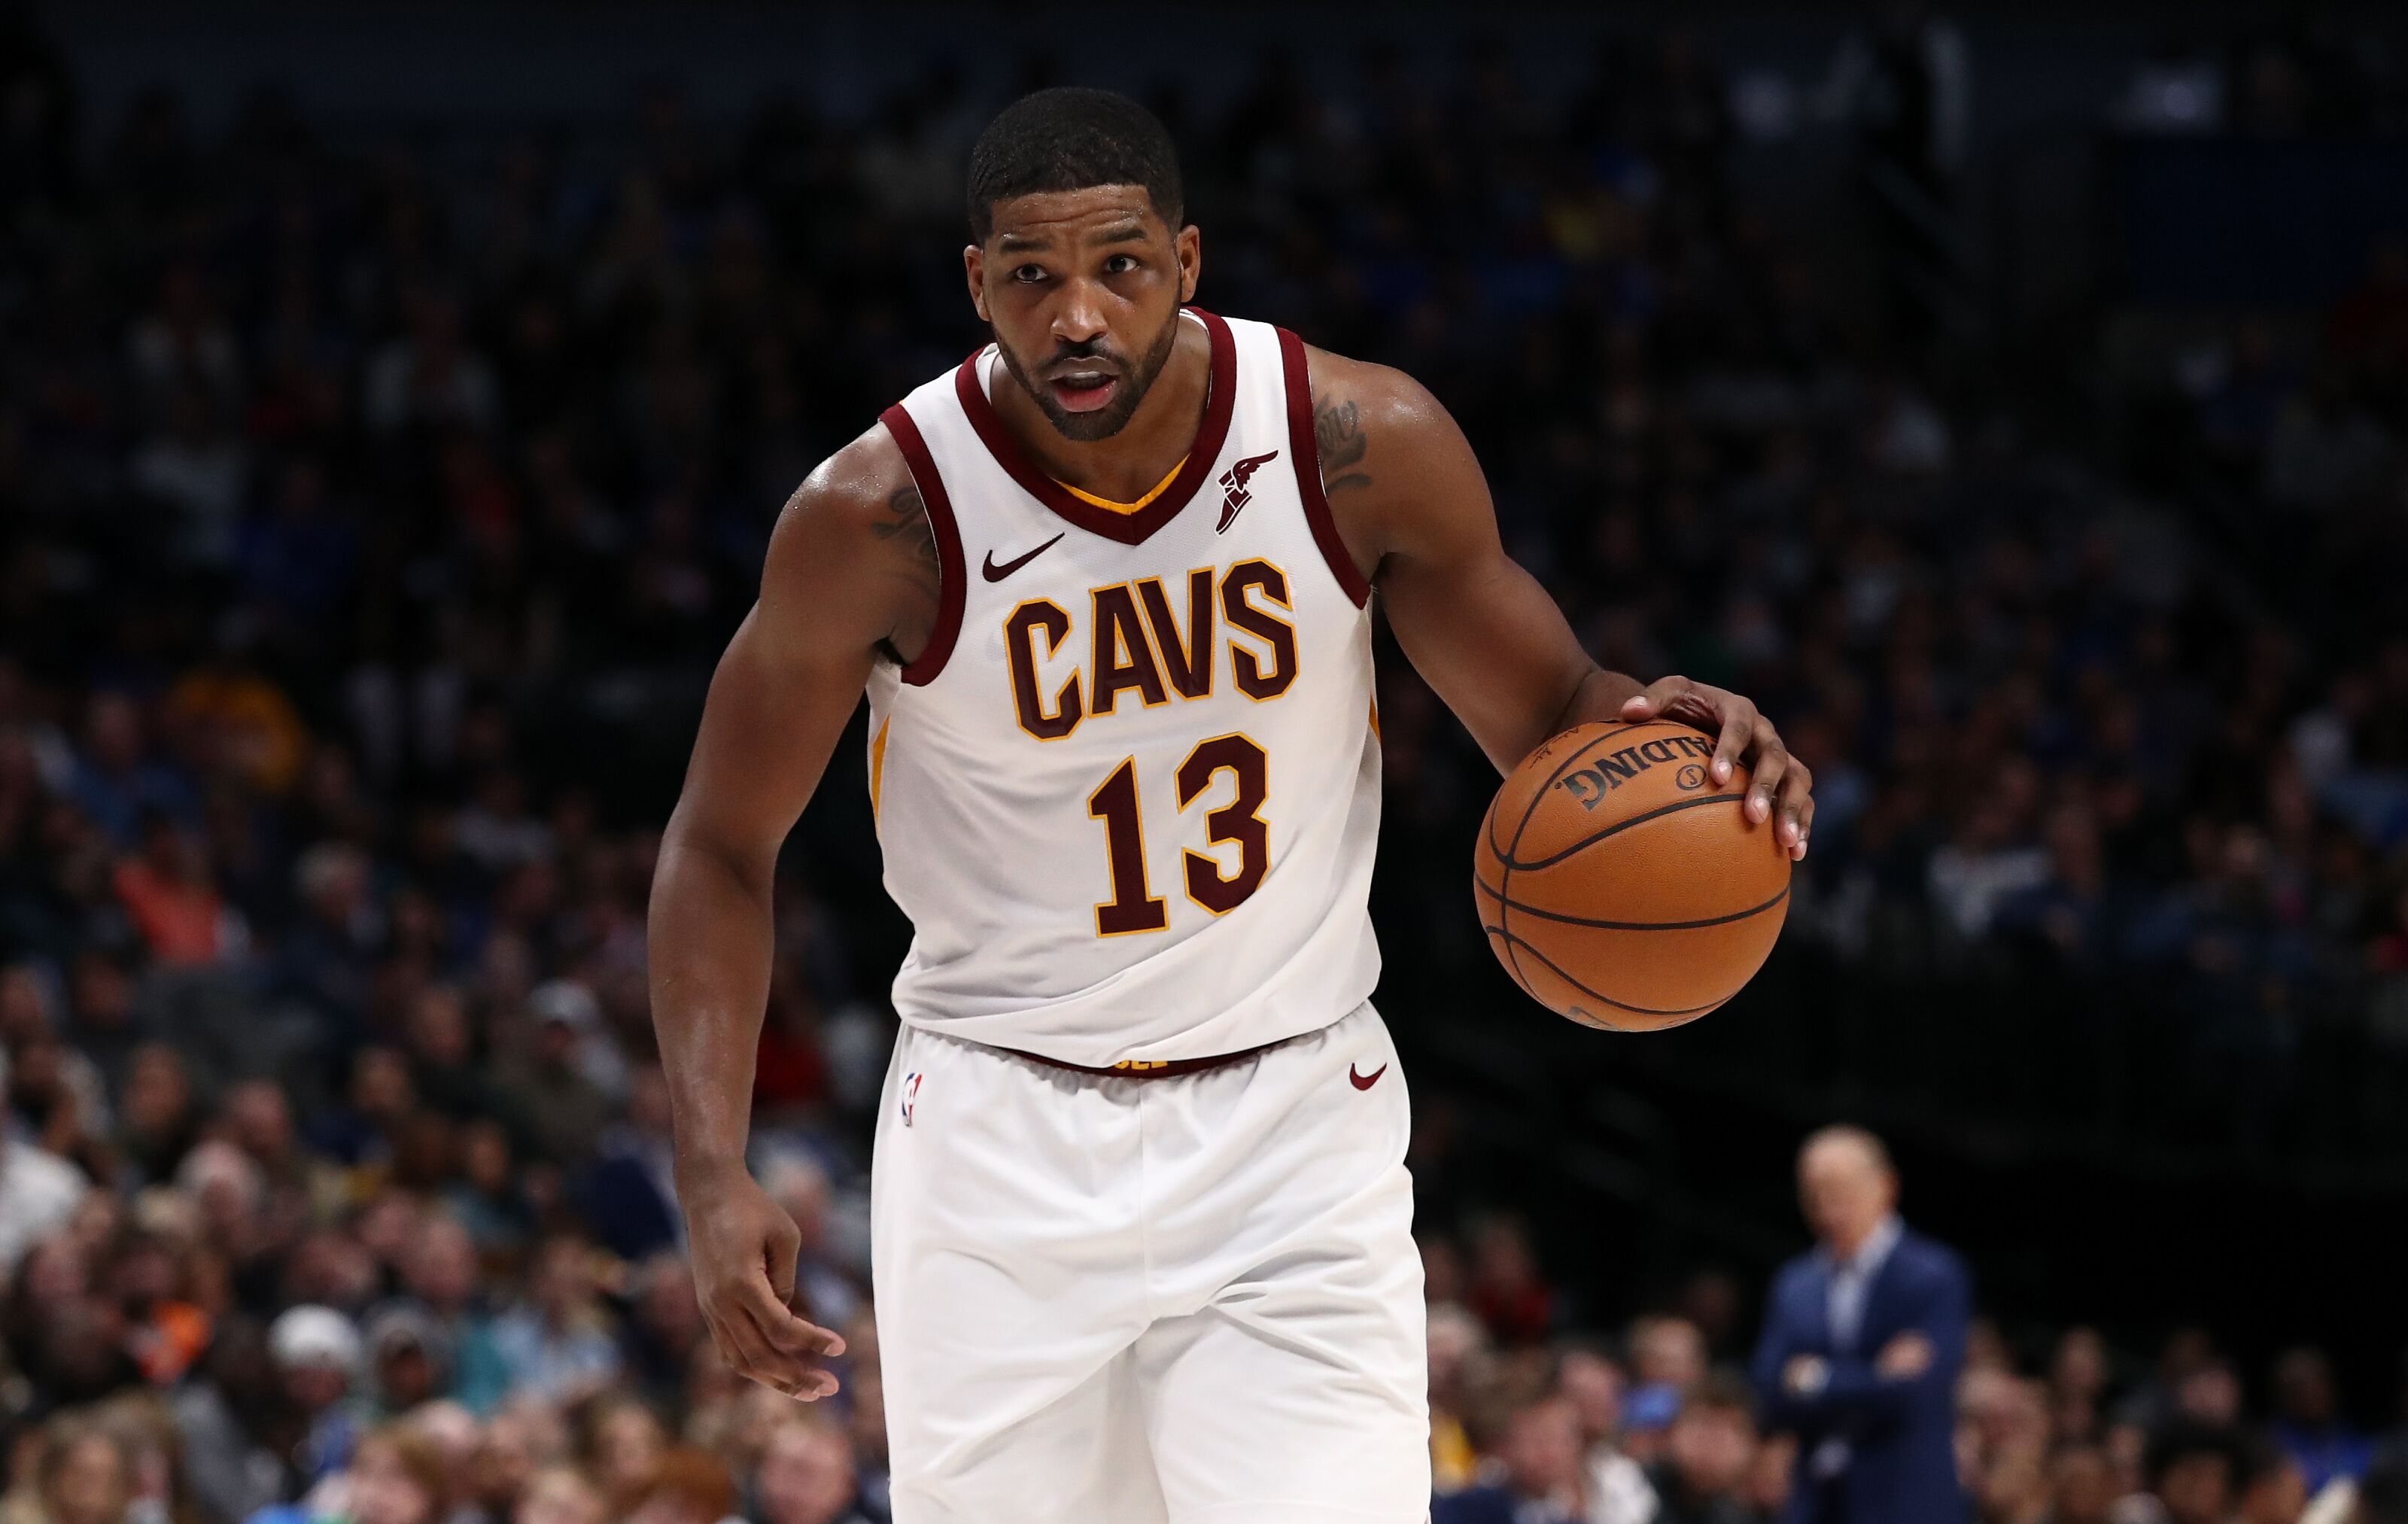 Cleveland Cavaliers trade rumors: High interest in Tristan Thompson